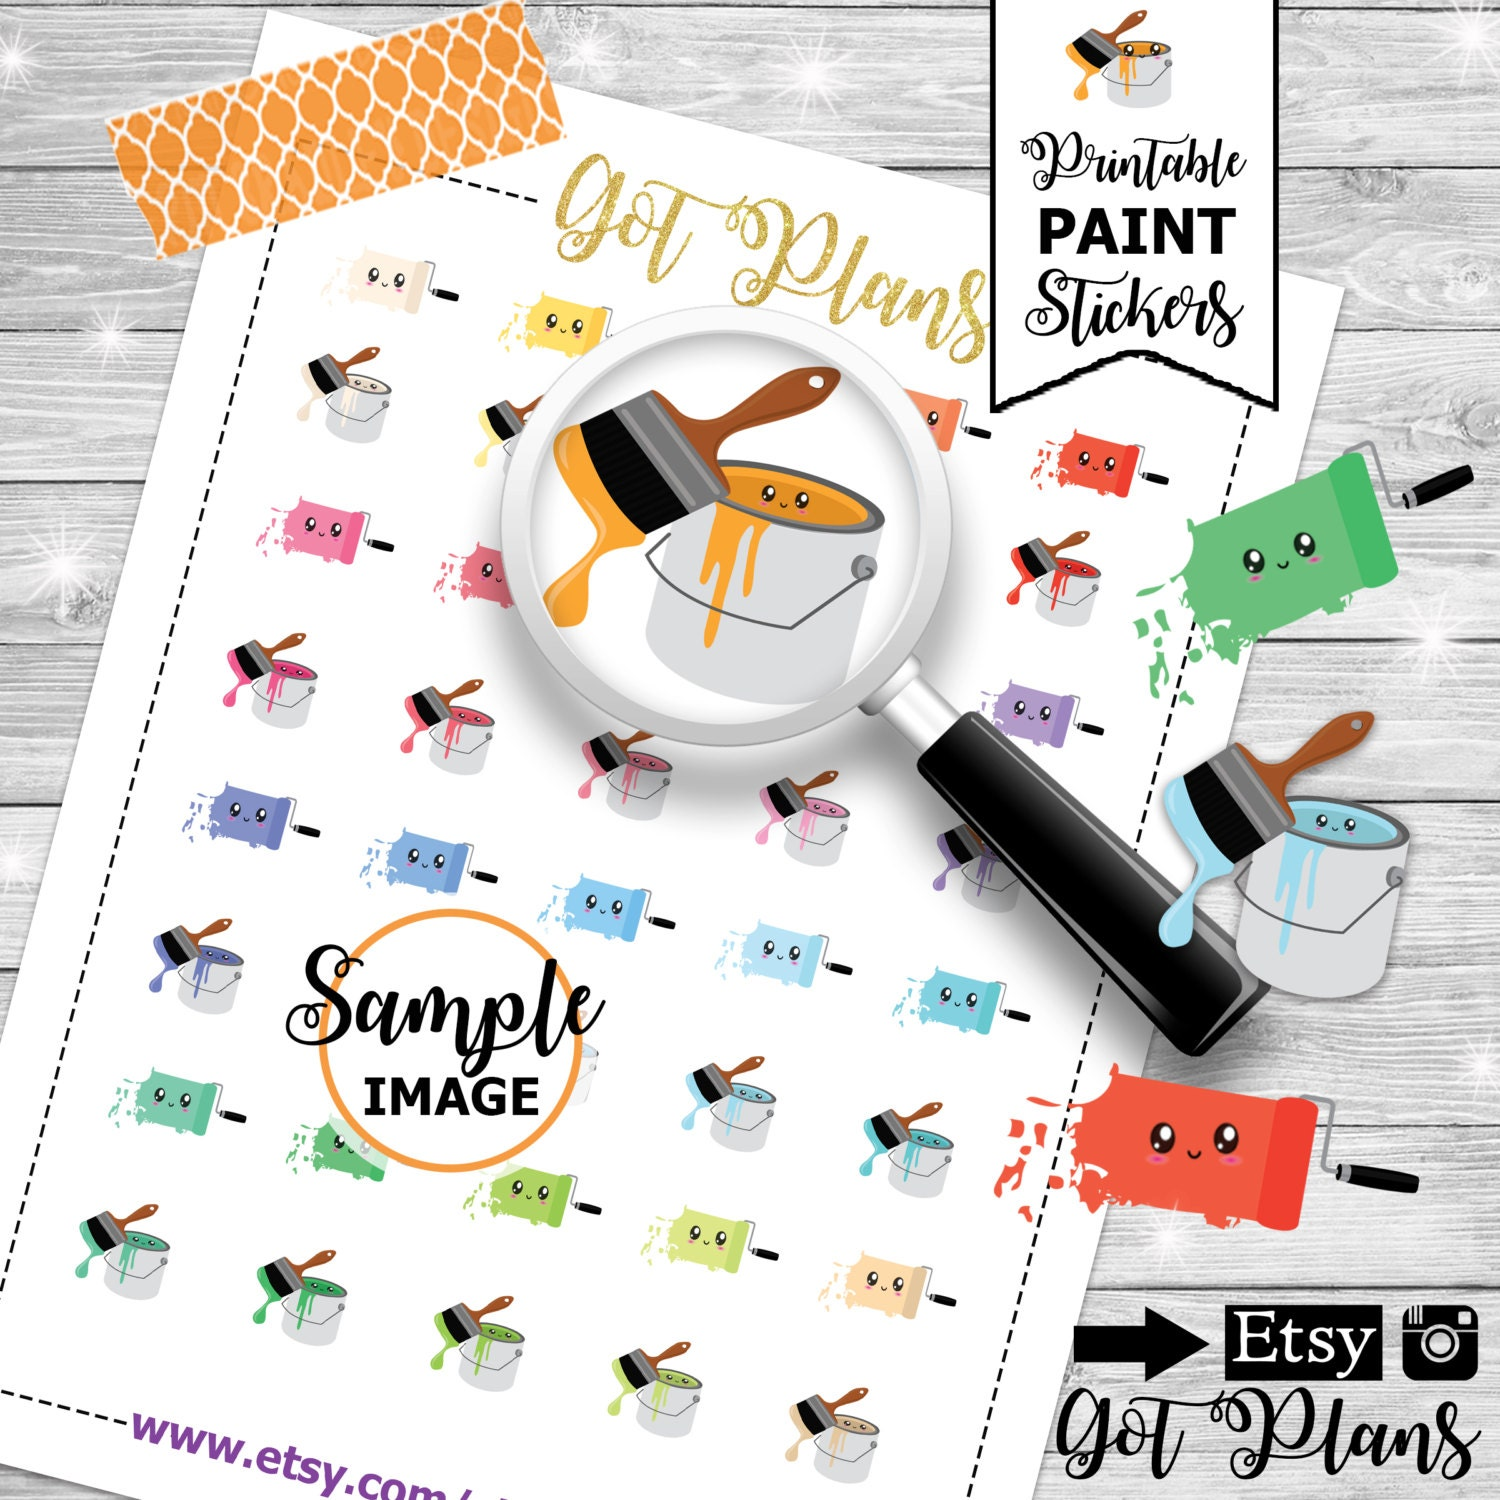 Paint planner stickers printable planner stickers for Paint planner